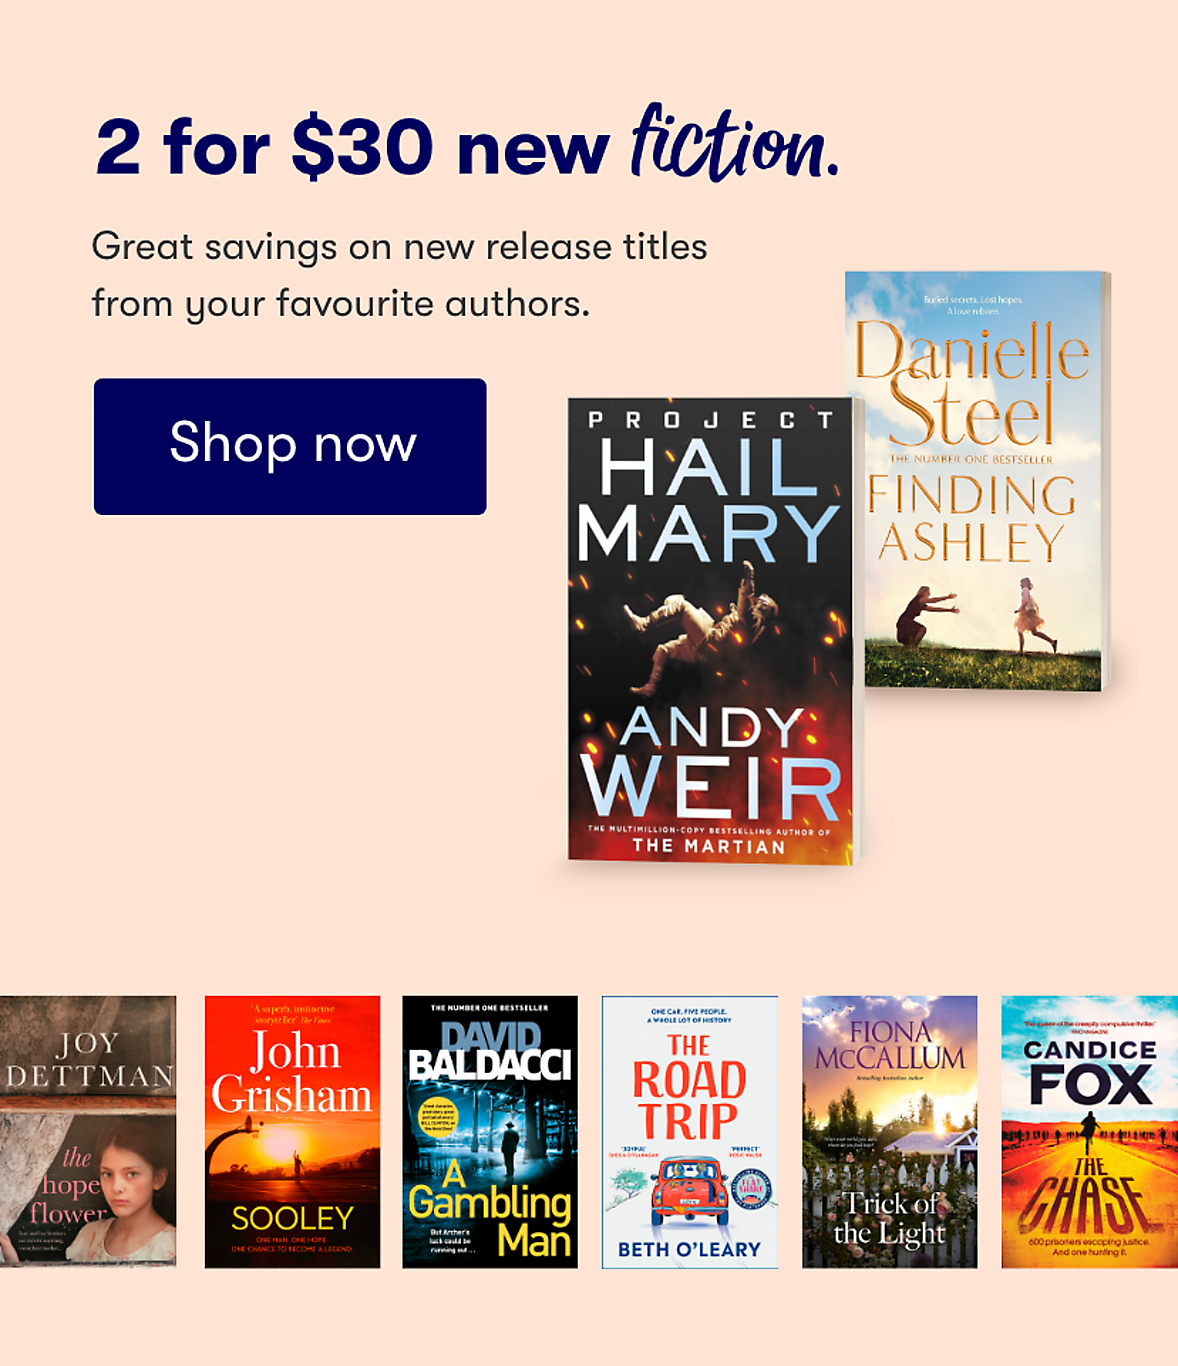 New Release Fiction Books 2 for $30